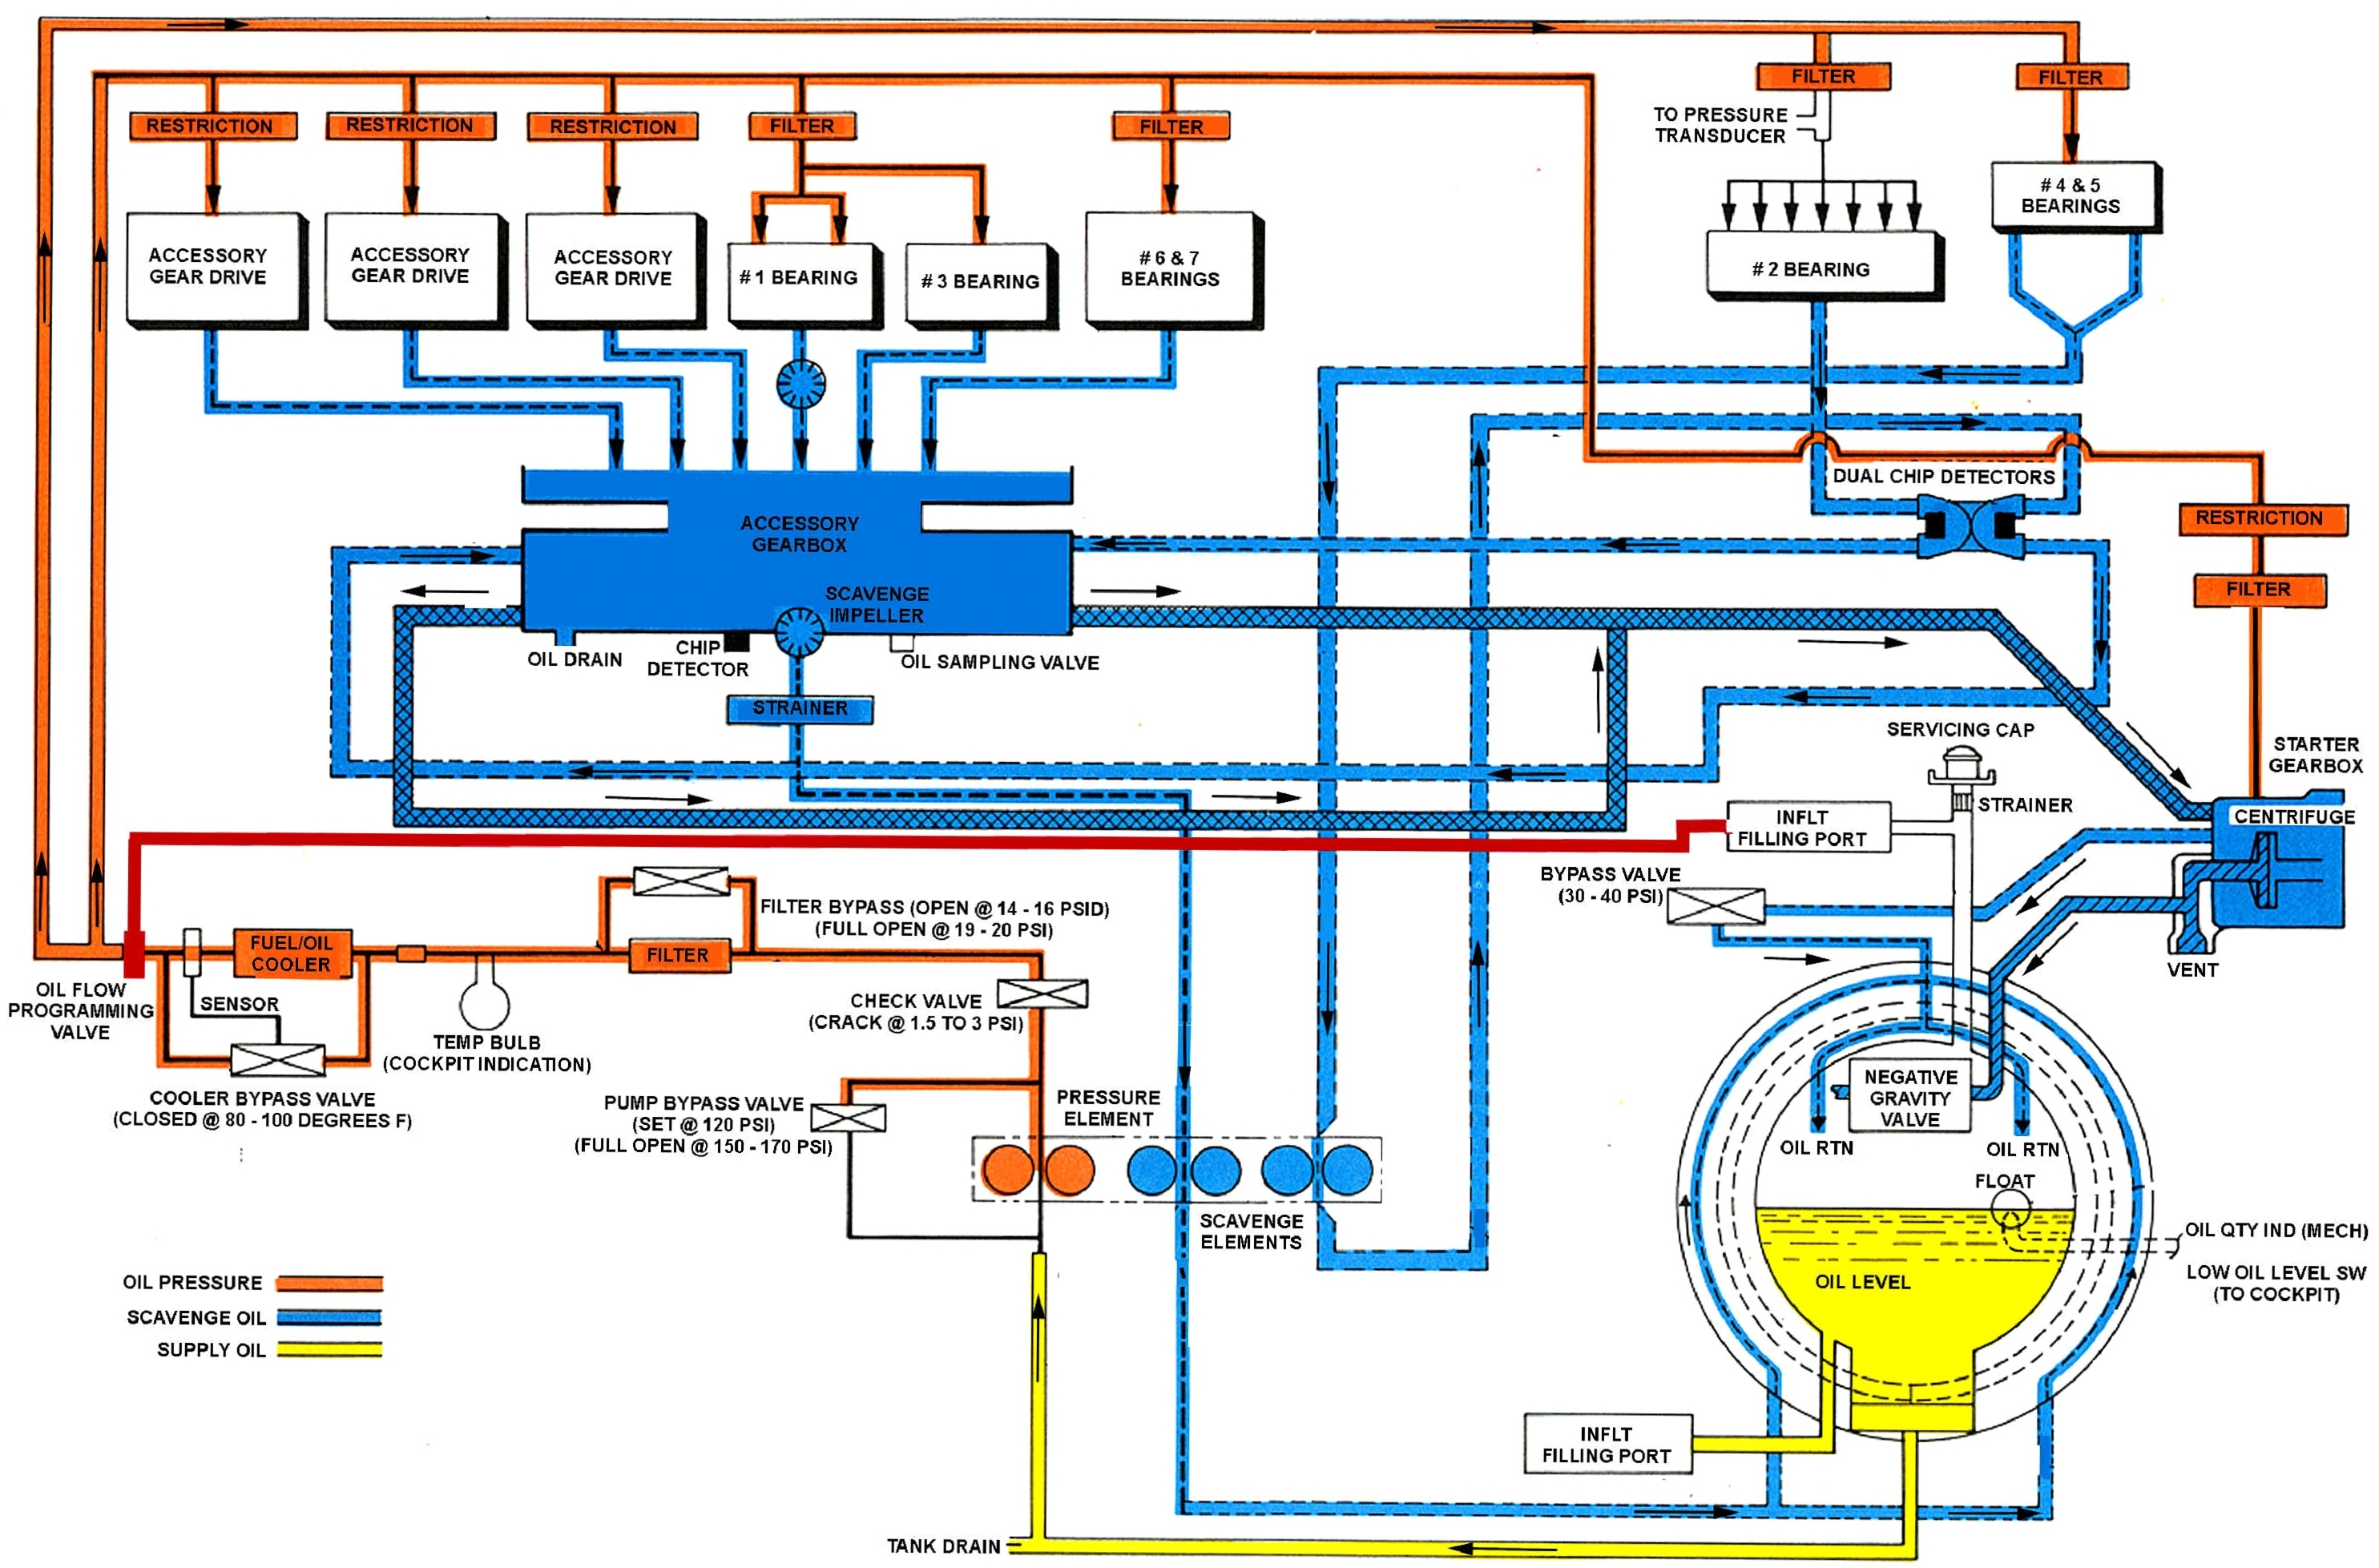 Boeing Ch 47d Chinook The Powerplant Jet Engine Diagram Of An Axialflow A Honeywell Ga 714a Oil Flow Click N Go Here To